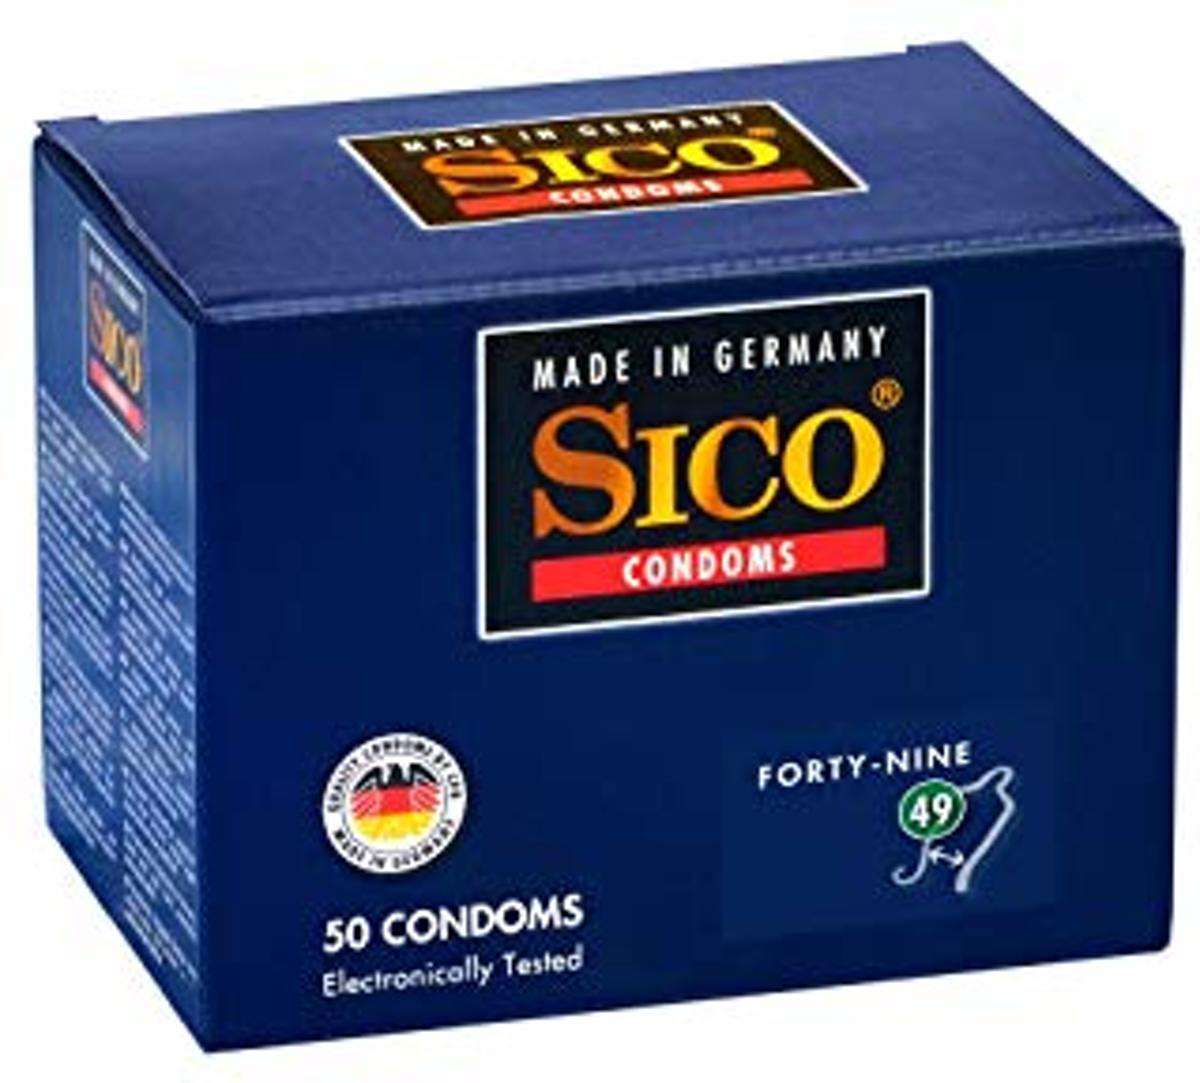 Sico 49 (Forty-Nine) Condooms